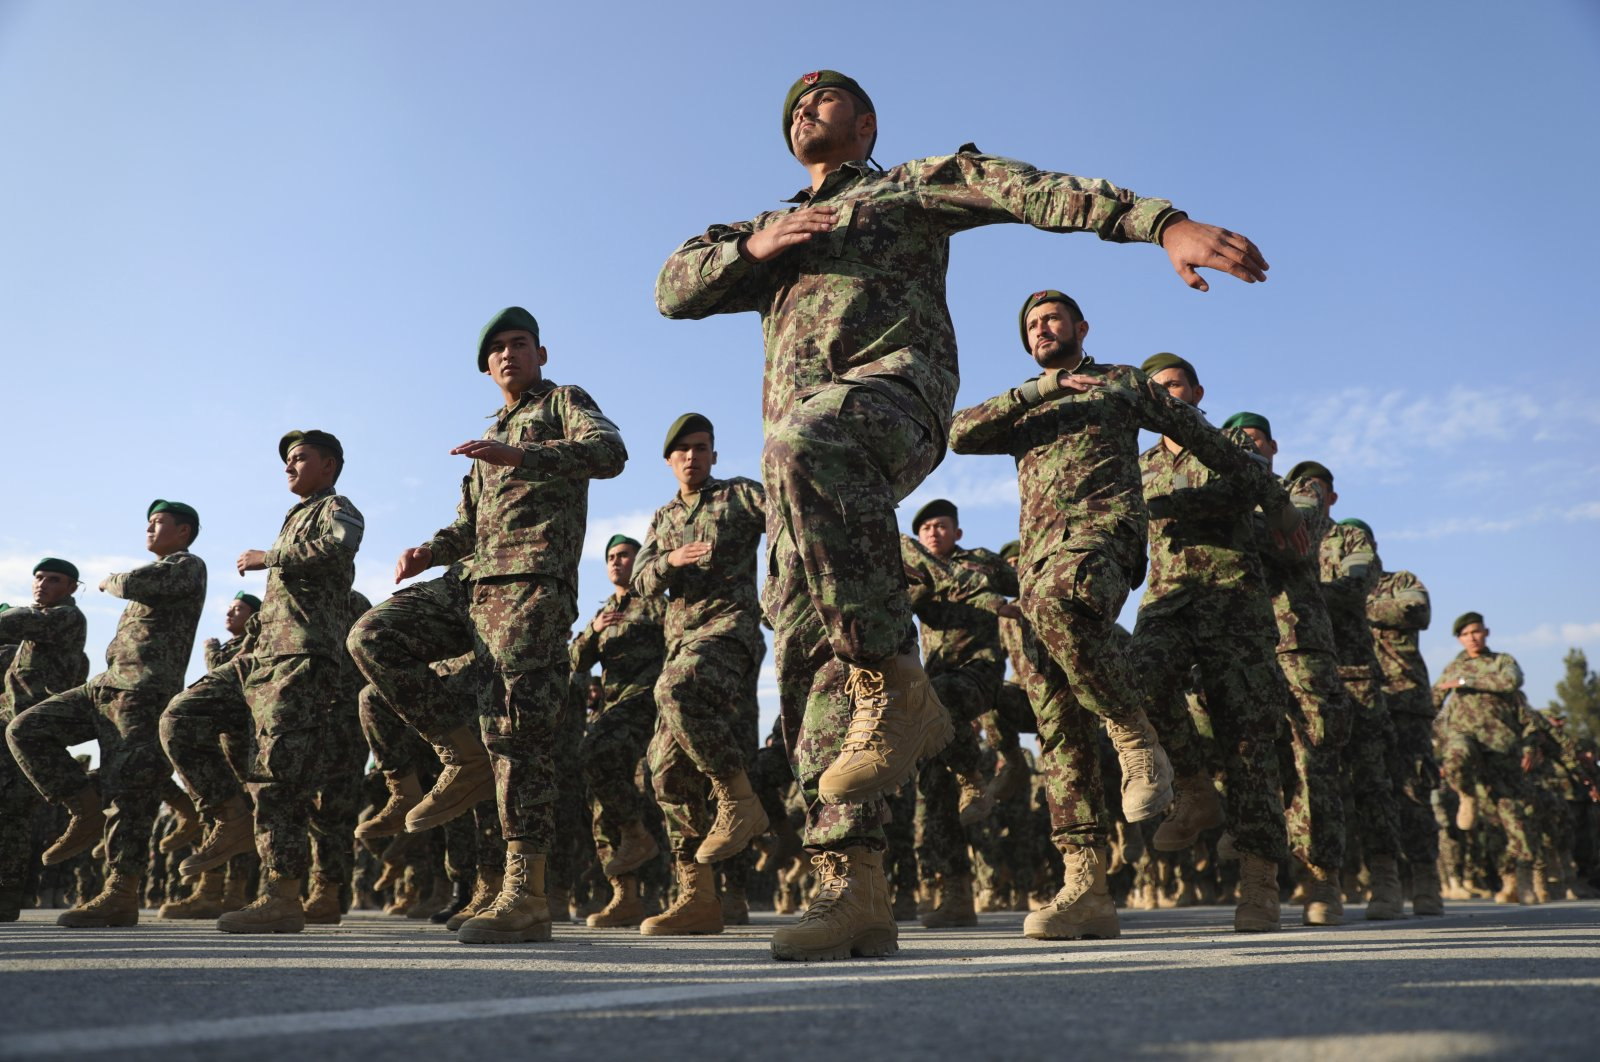 Newly graduated Afghan National Army march during their graduation ceremony after a three-month training program at the Afghan Military Academy in Kabul, Afghanistan, Nov. 29, 2020. (AP Photo)